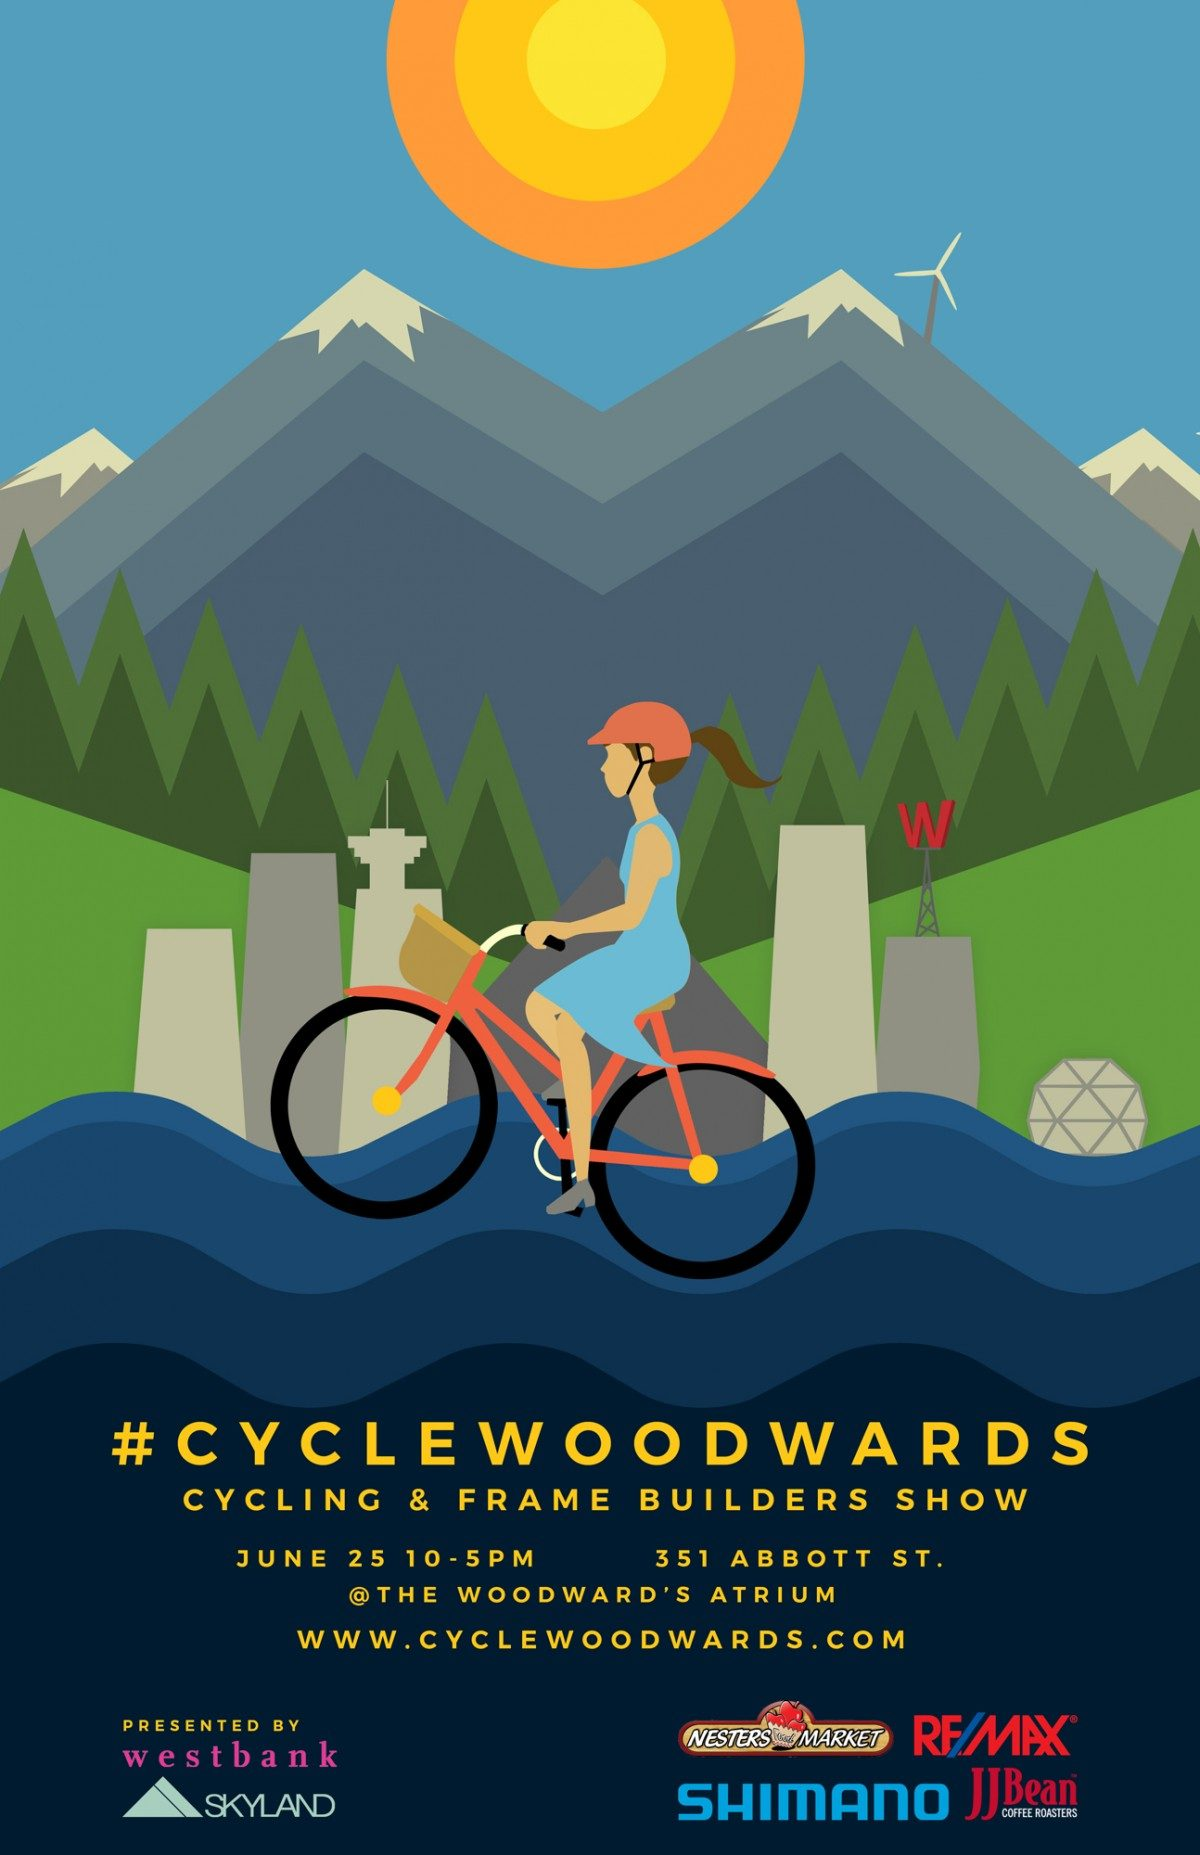 Cycle-Woodwards-2016-Poster